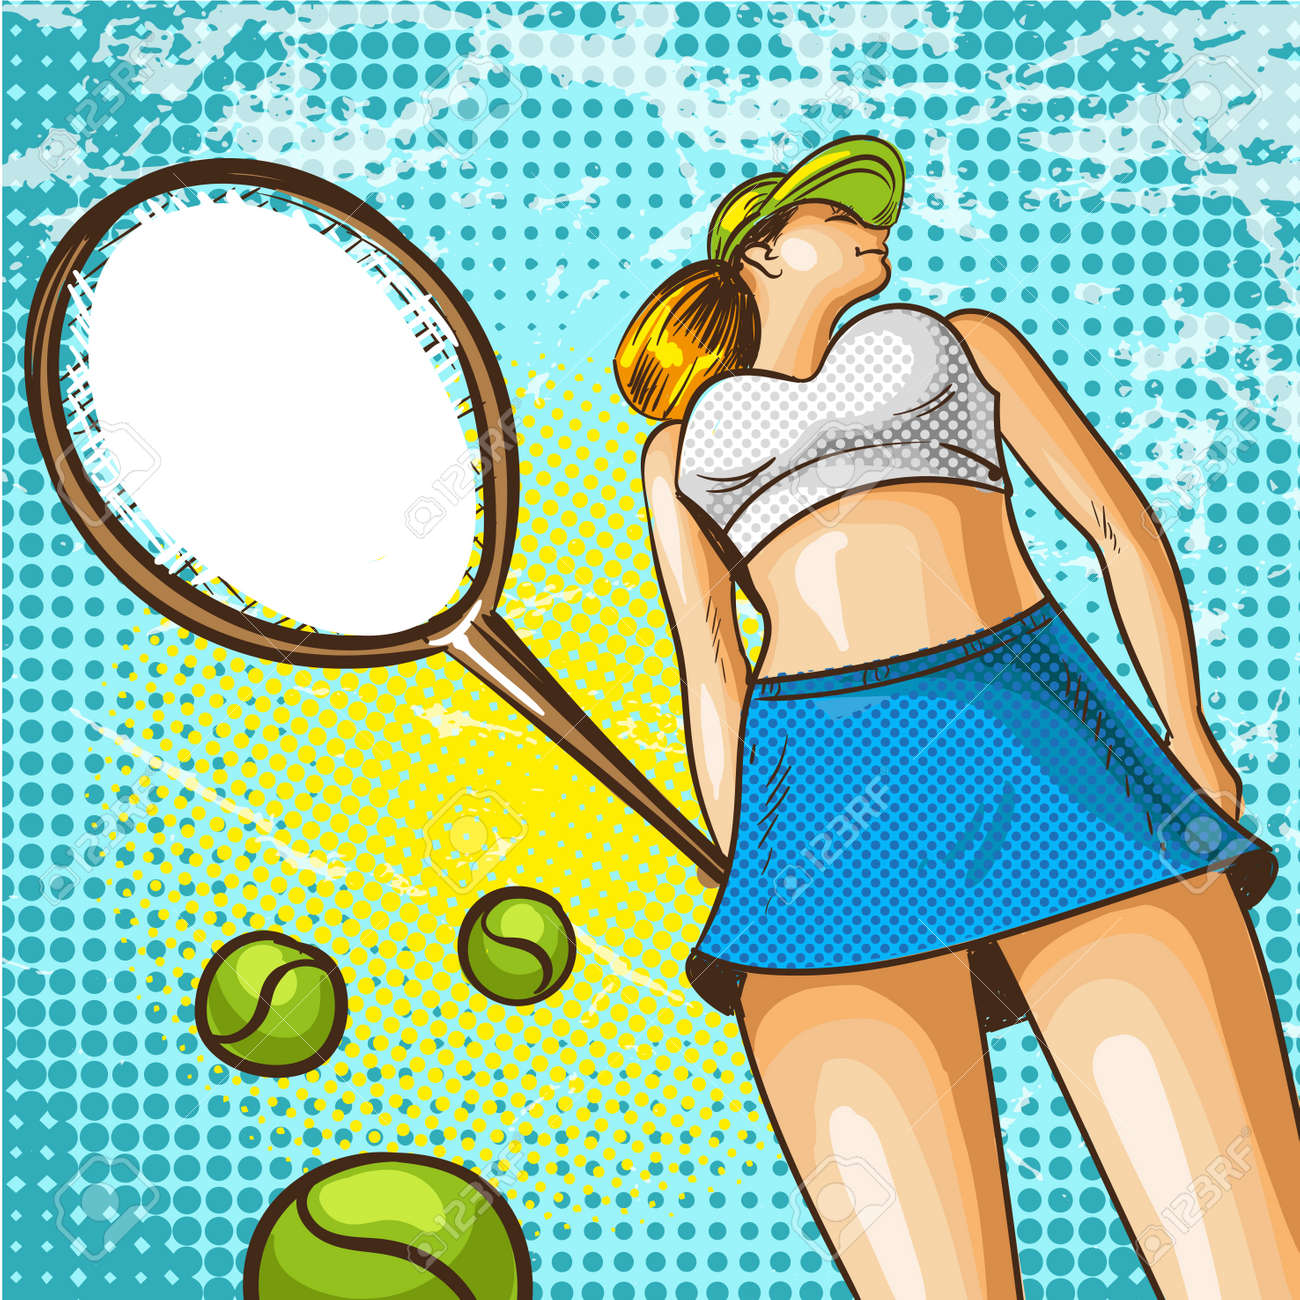 Beautiful Young Woman With Tennis Racket In Retro Pop Art Comic Royalty Free Cliparts Vectors And Stock Illustration Image 89981229